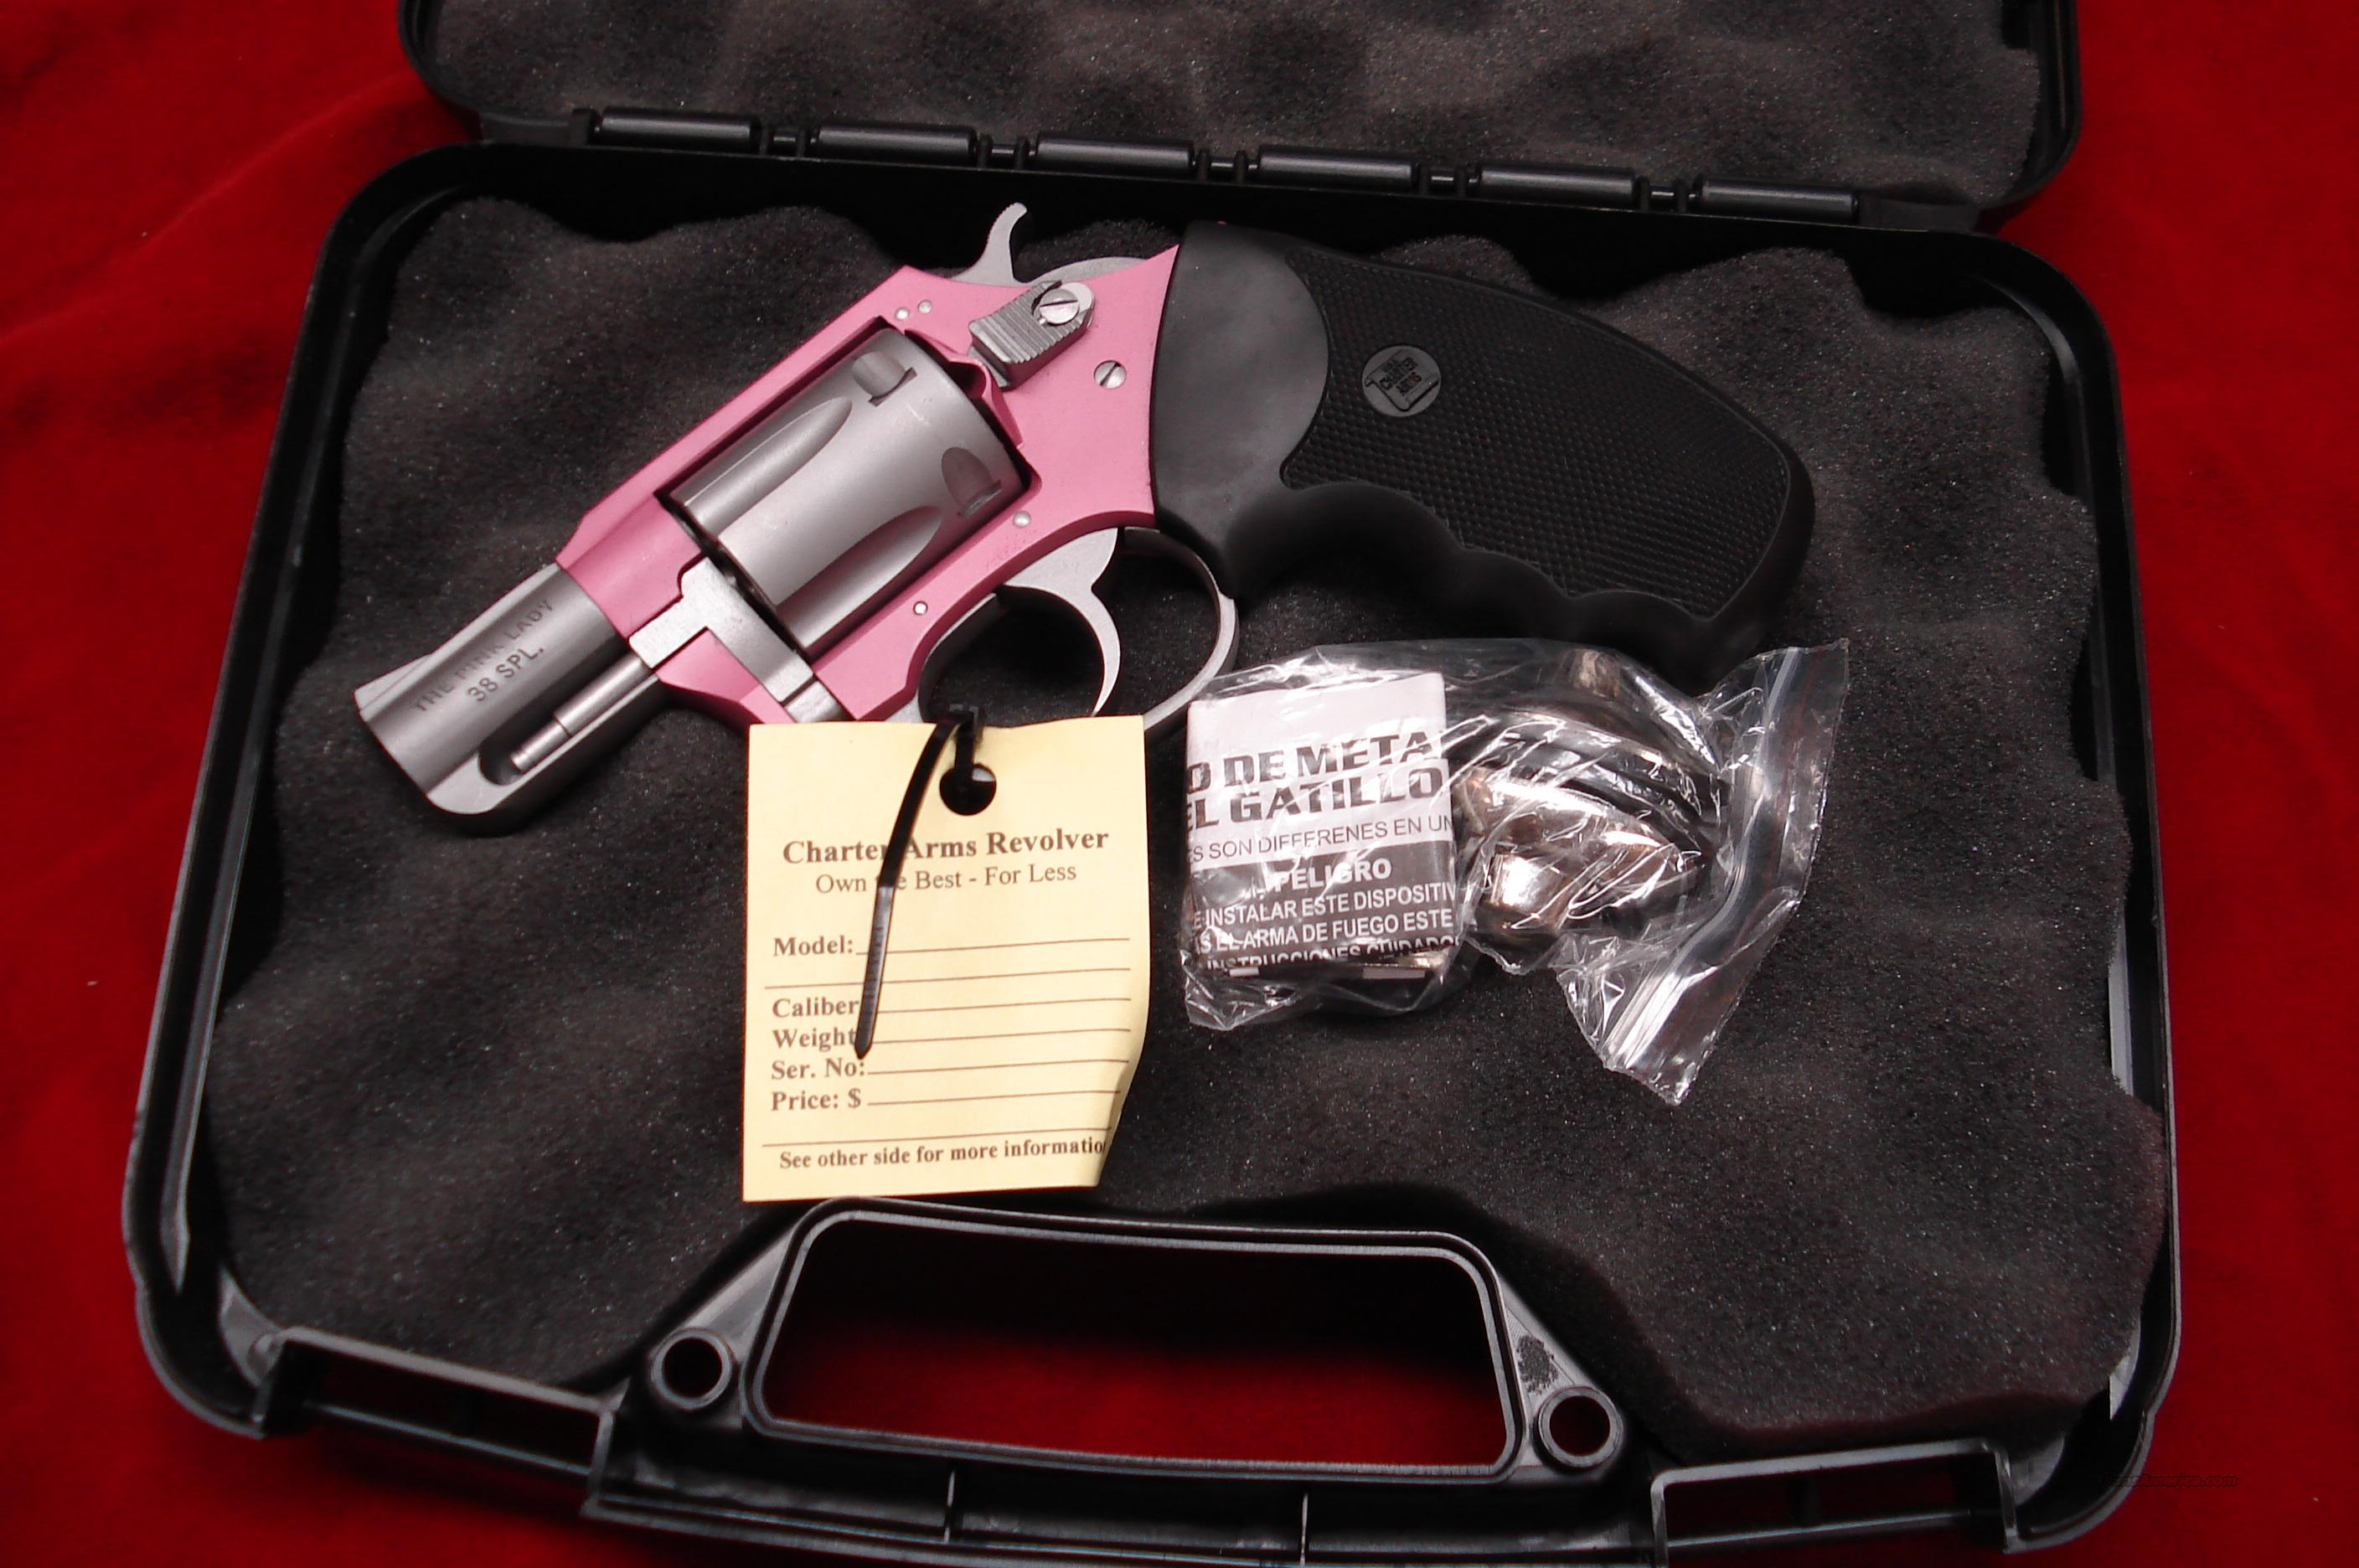 CHARTER ARMS PINK LADY 38SPL. NEW  Guns > Pistols > Charter Arms Revolvers